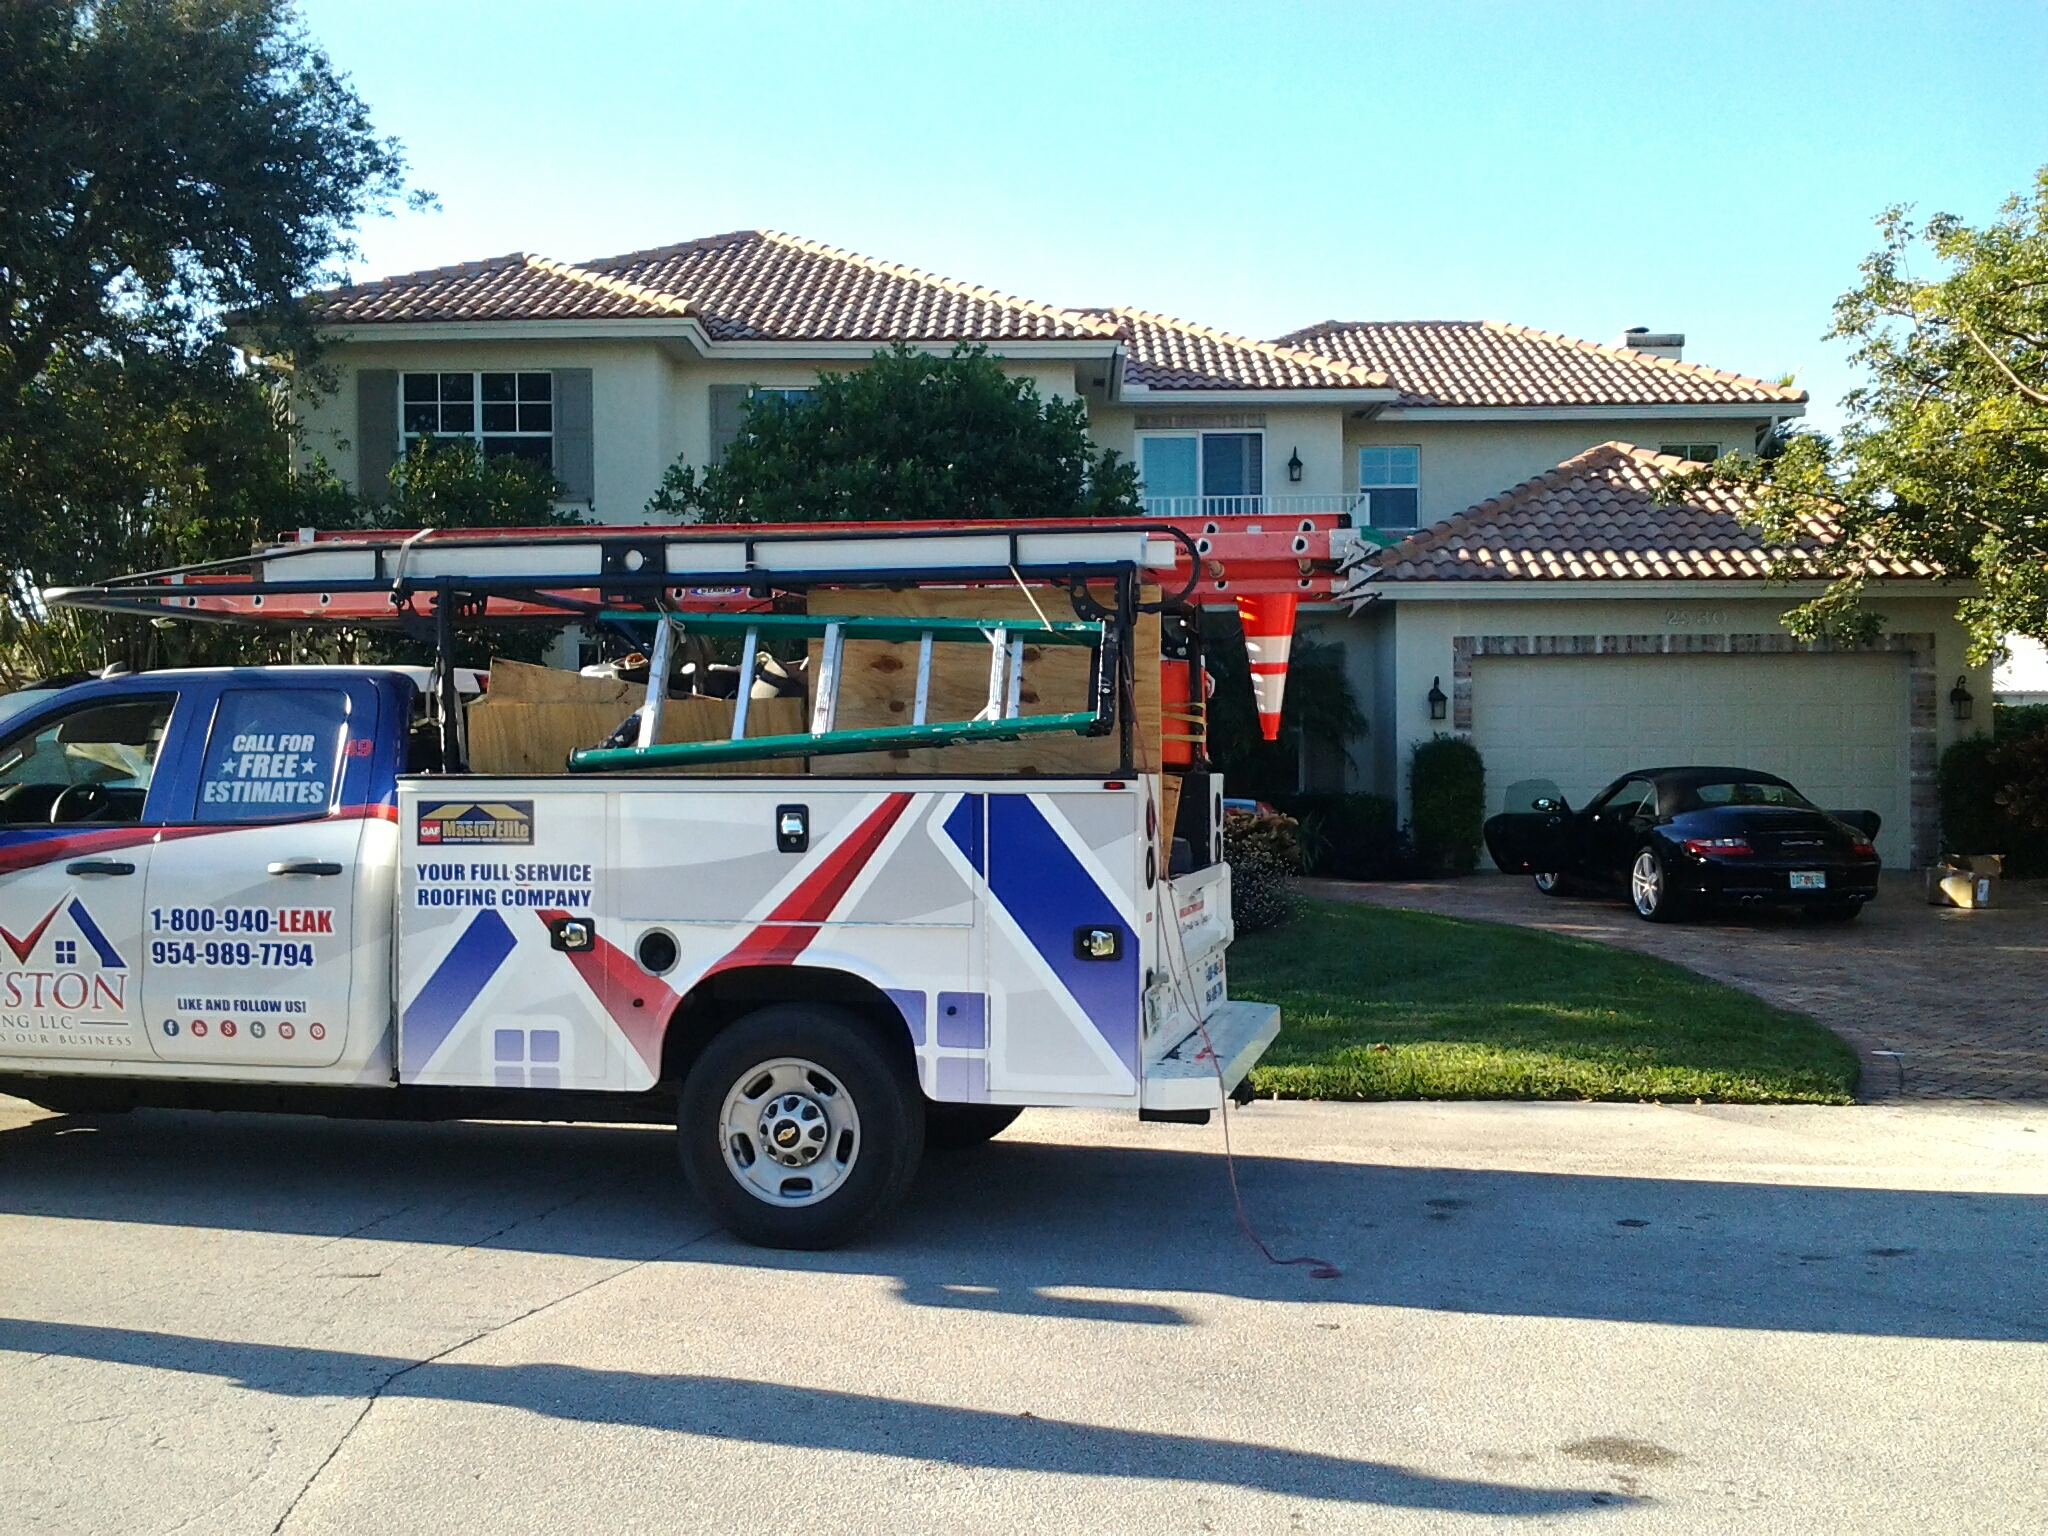 Lighthouse Point, FL - Tile roof repair in the city of lighthouse point fl this repair is being done by Earl w Johnston roofing company Jos? end Duane are you repair technicians